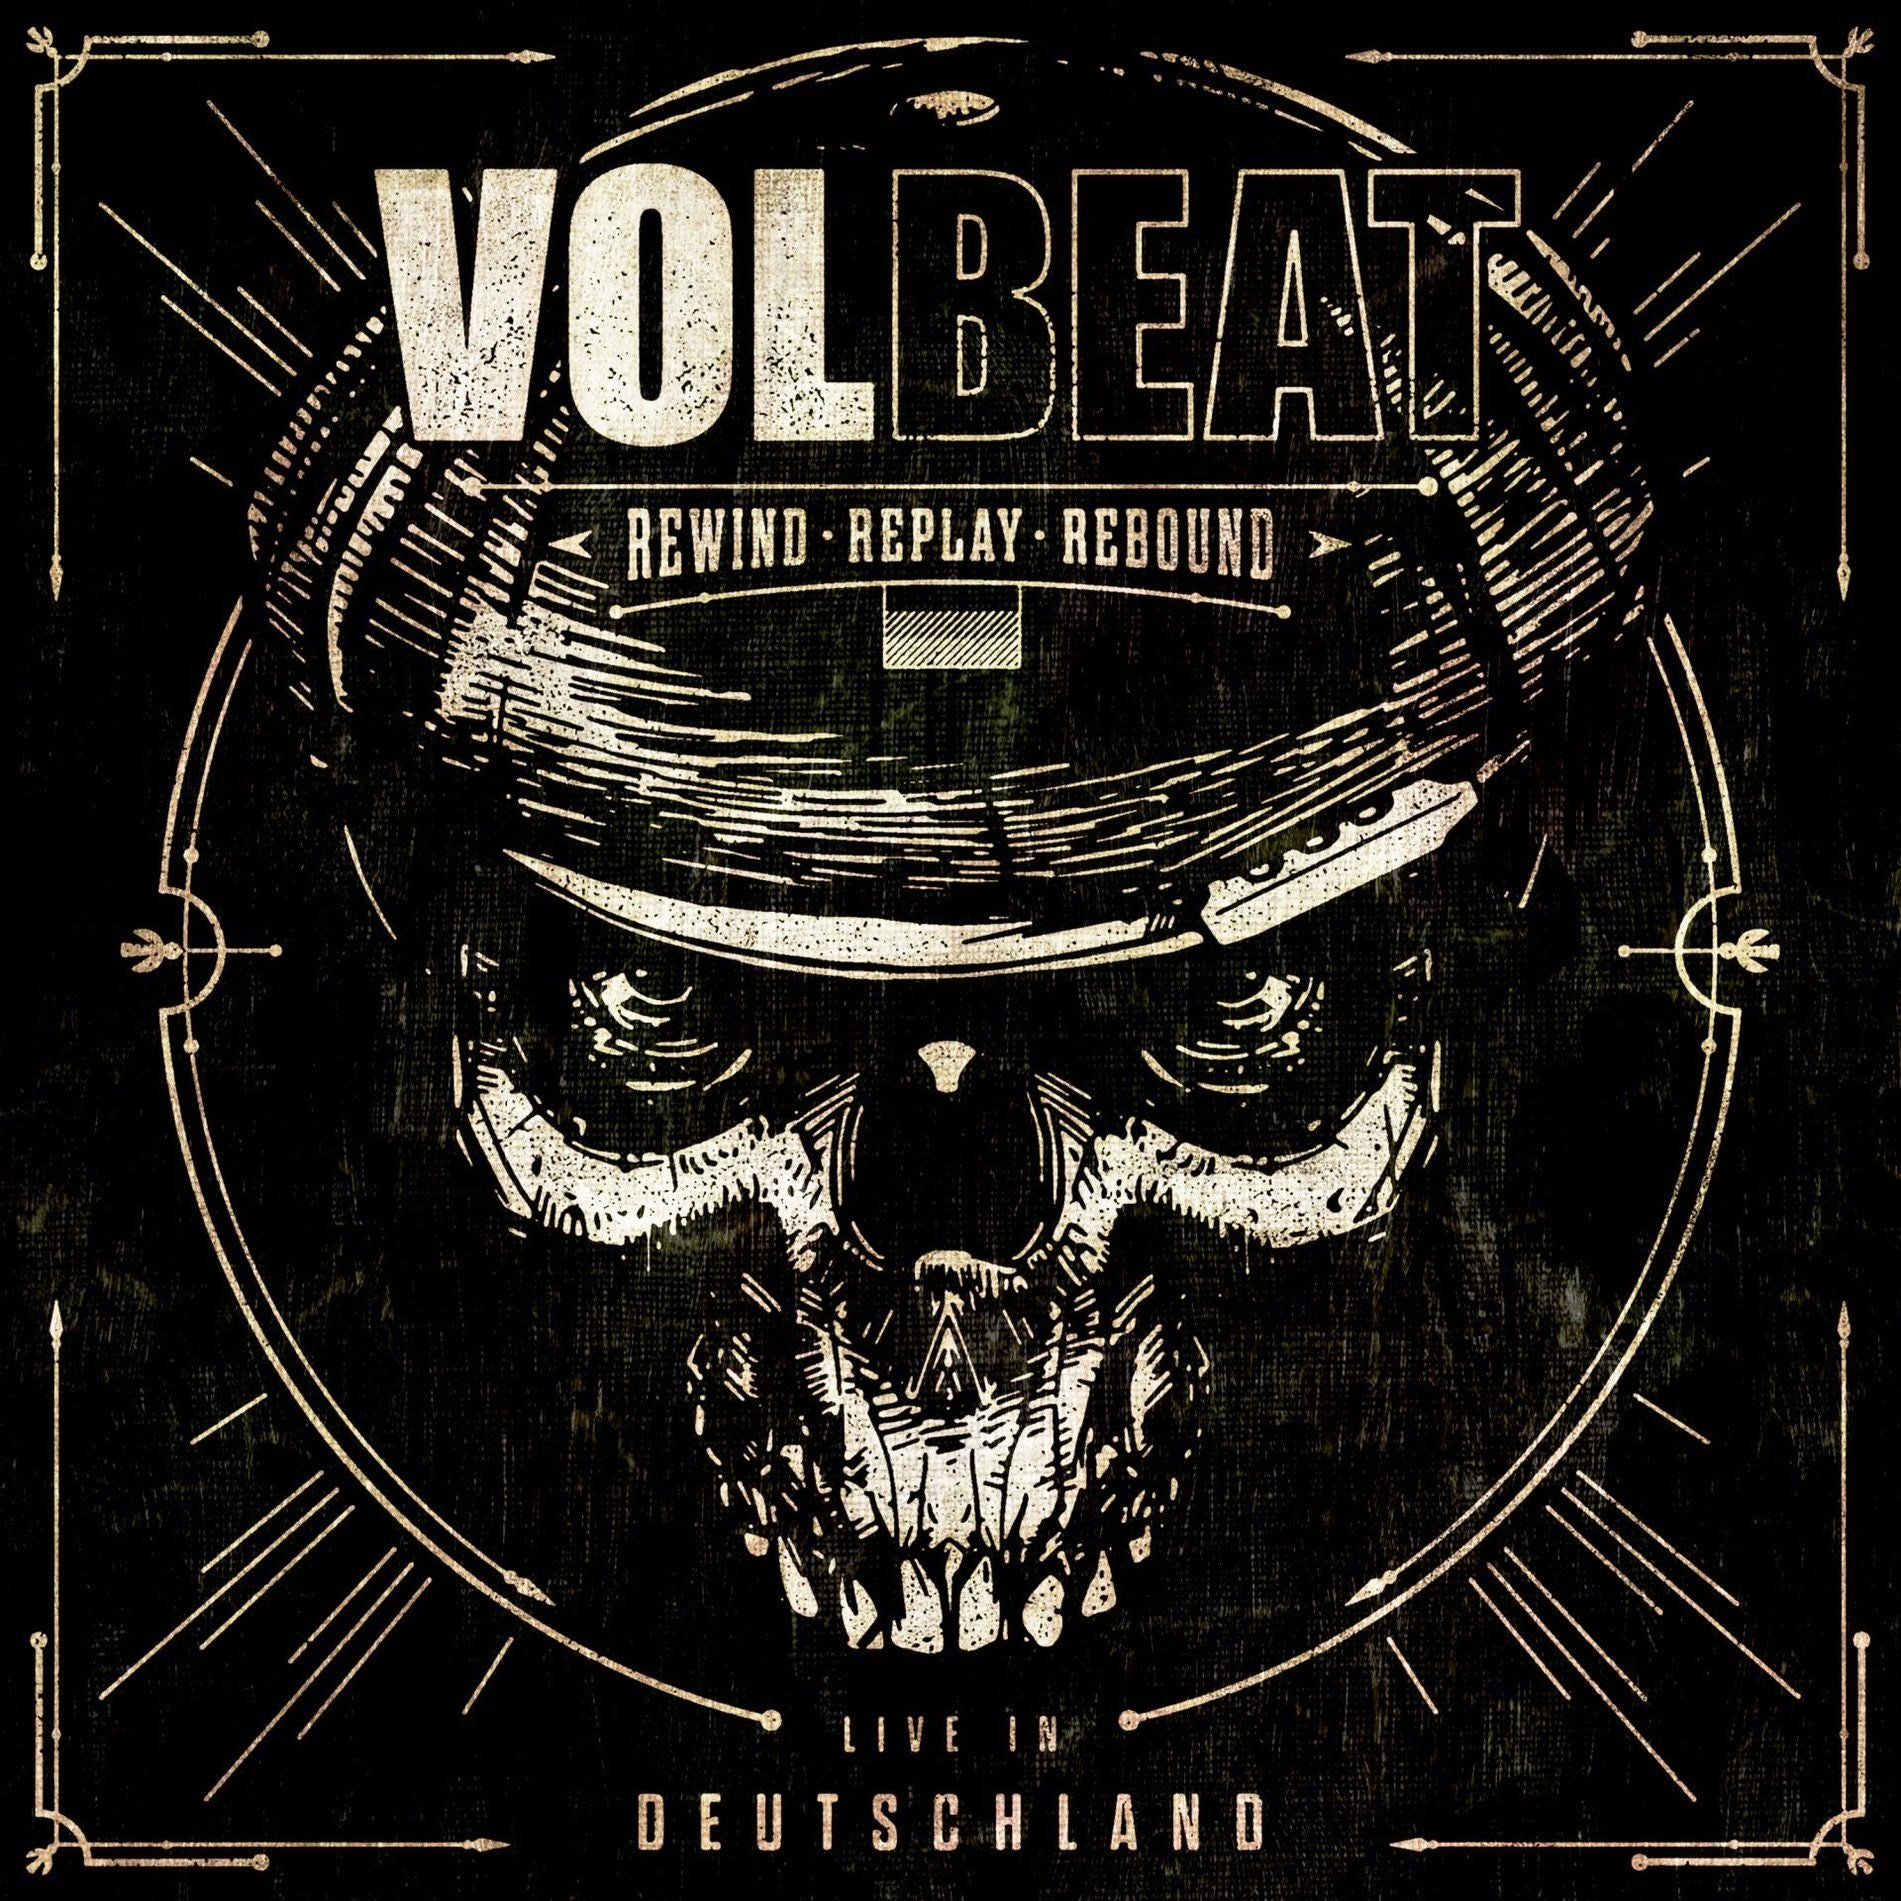 Volbeat - Rewind Replay Rebound - Live In Deutschland Edition (2020 2CD reissue - bonus live CD) - CD - New